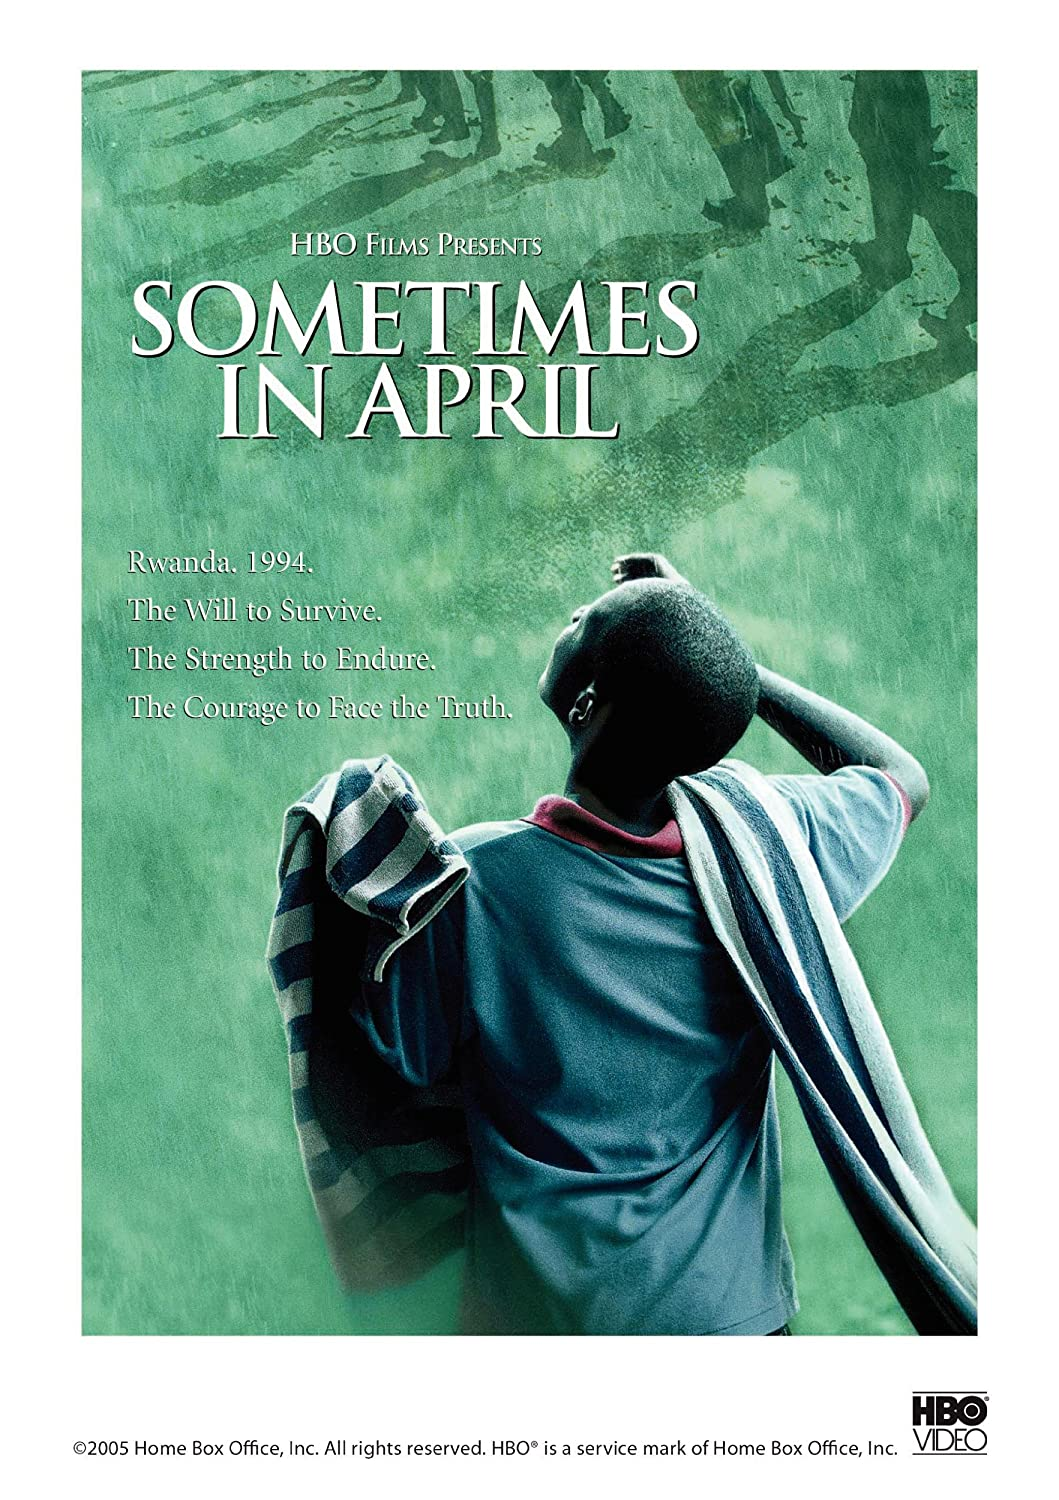 Amazon.com: Sometimes in April: Idris Elba, Debra Winger: Movies & TV